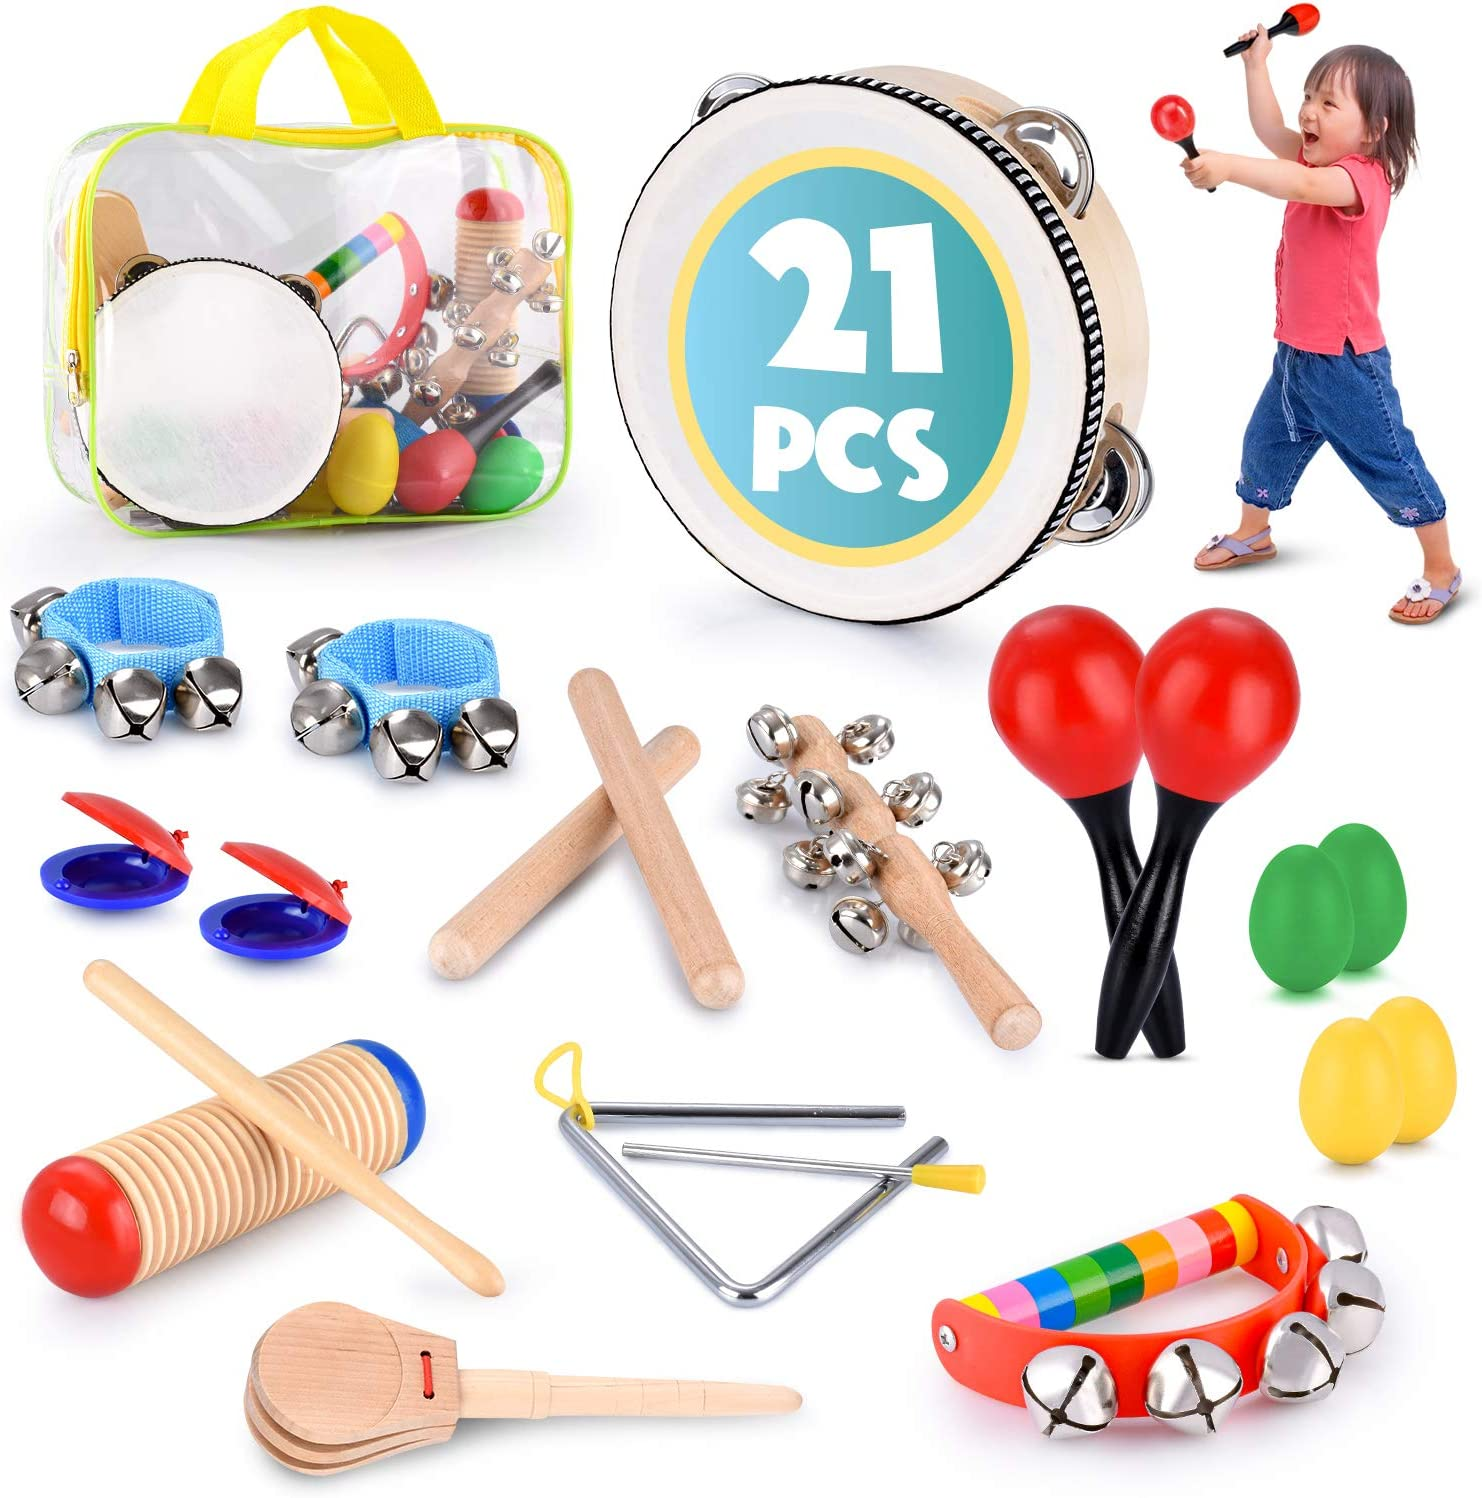 1 Pcs Wooden Sand Eggs Children Kids Baby Educational Instruments Musical Toys /&